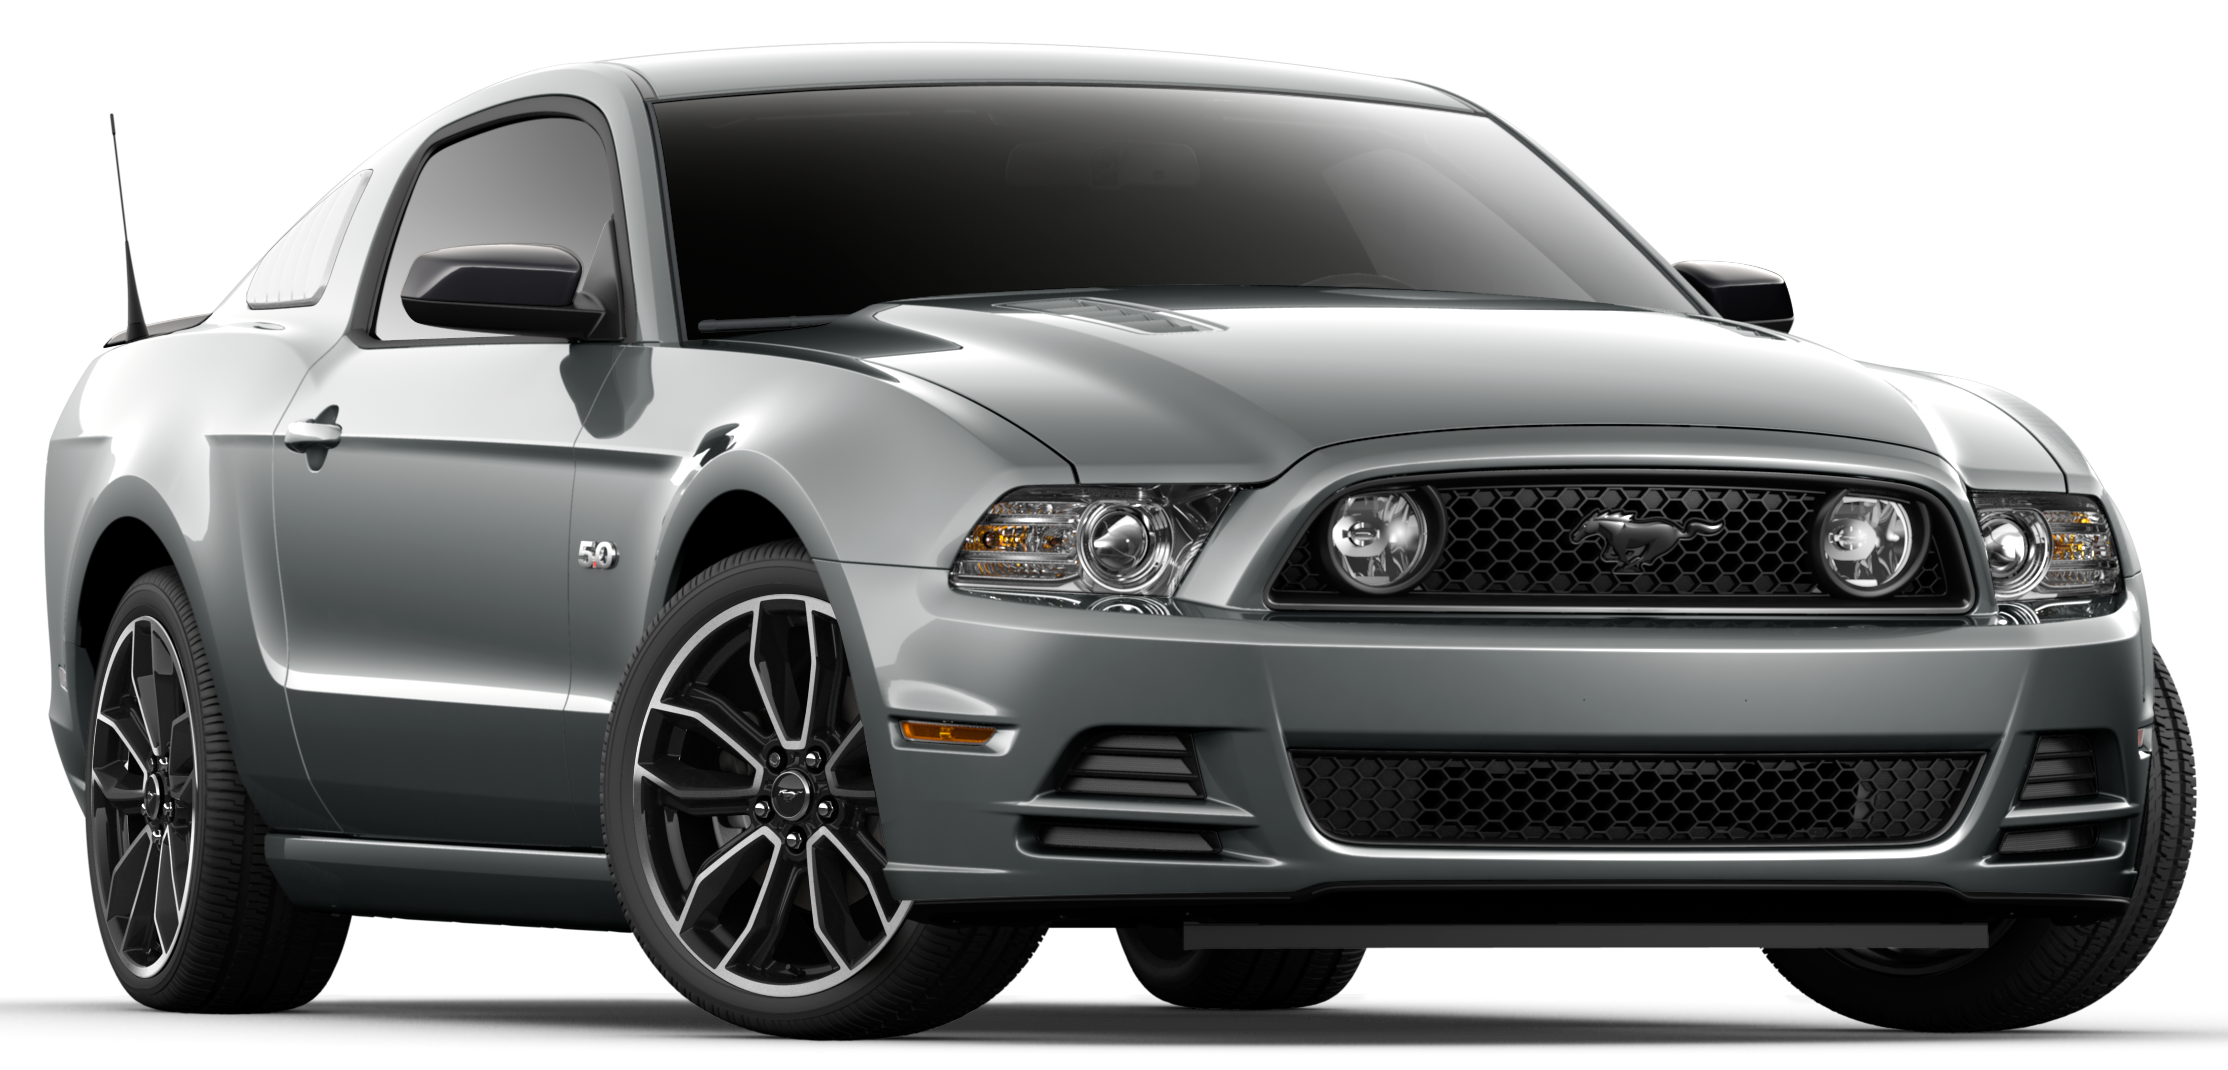 uploads ford ford PNG12208 3